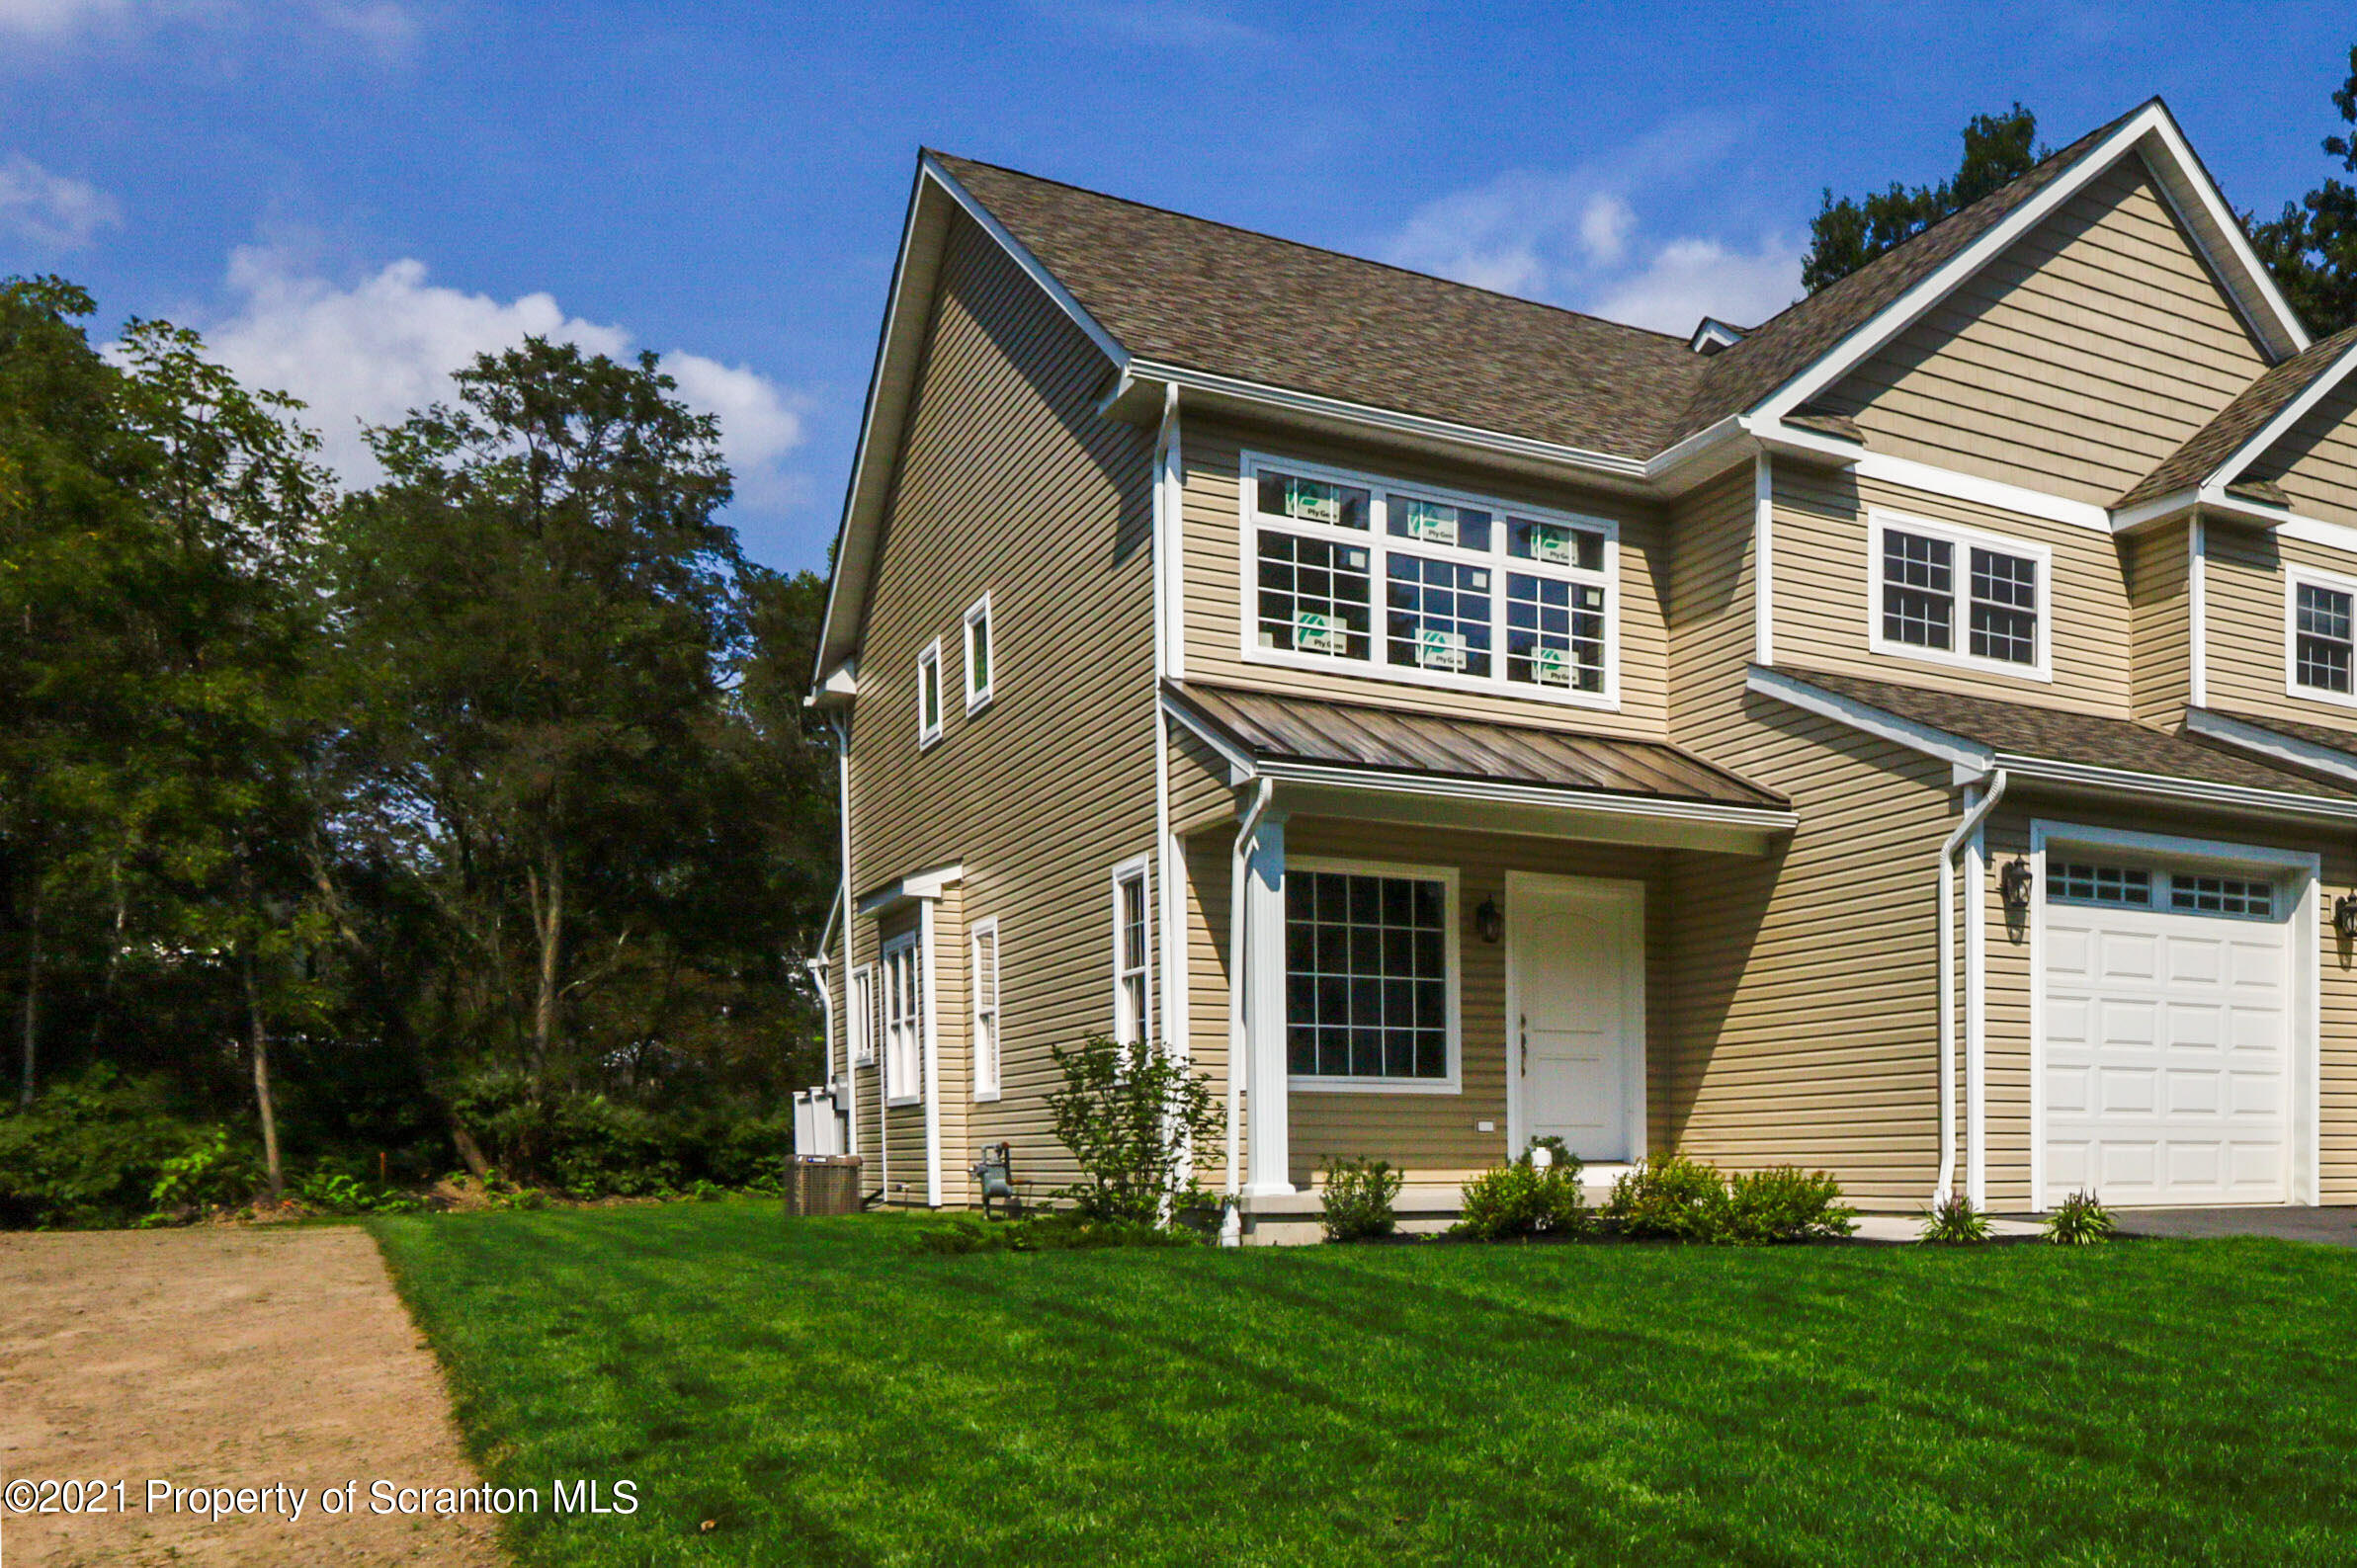 629 1st St, Archbald, Pennsylvania 18403, 3 Bedrooms Bedrooms, 6 Rooms Rooms,3 BathroomsBathrooms,Residential - condo/townhome,For Sale,1st,21-1073